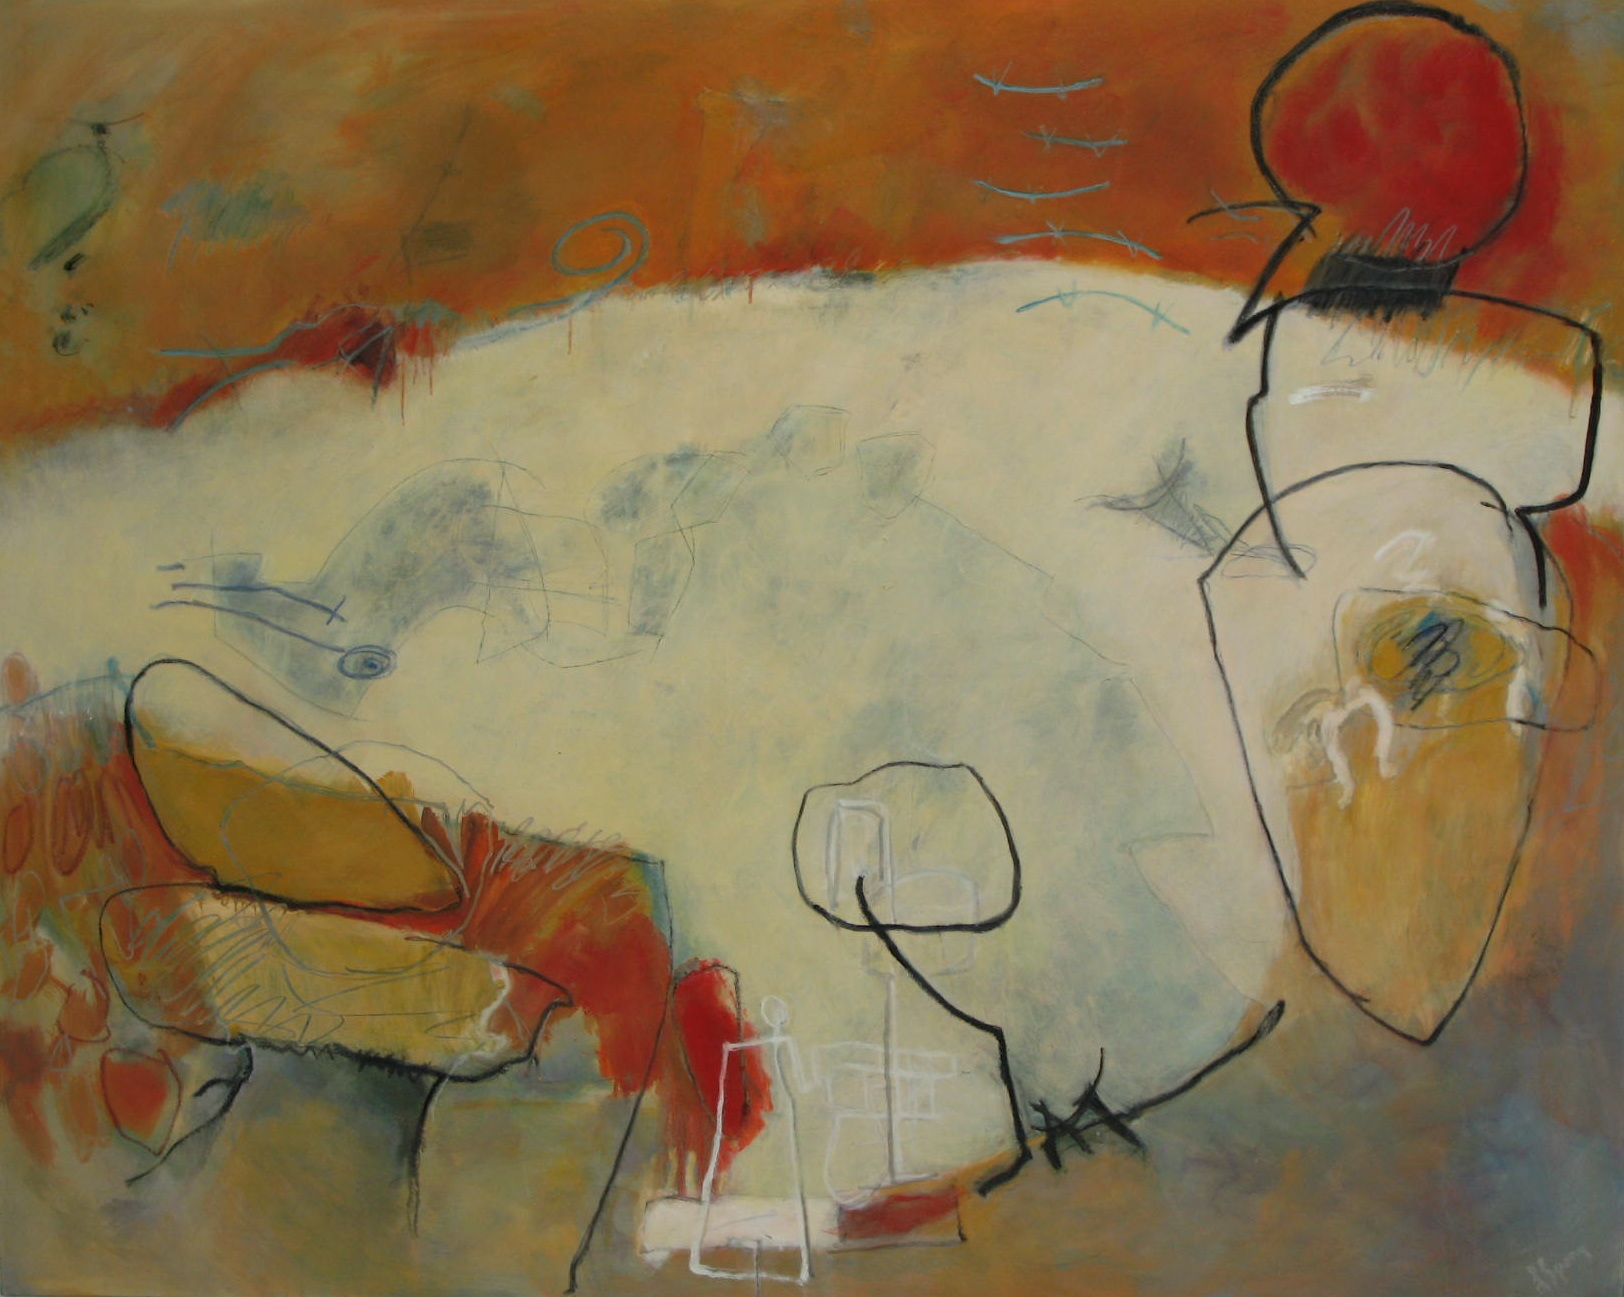 Laura Spong, Mostly It's a Journey, 2008, oil on canvas, 48 x 60 in. (if ART Gallery)